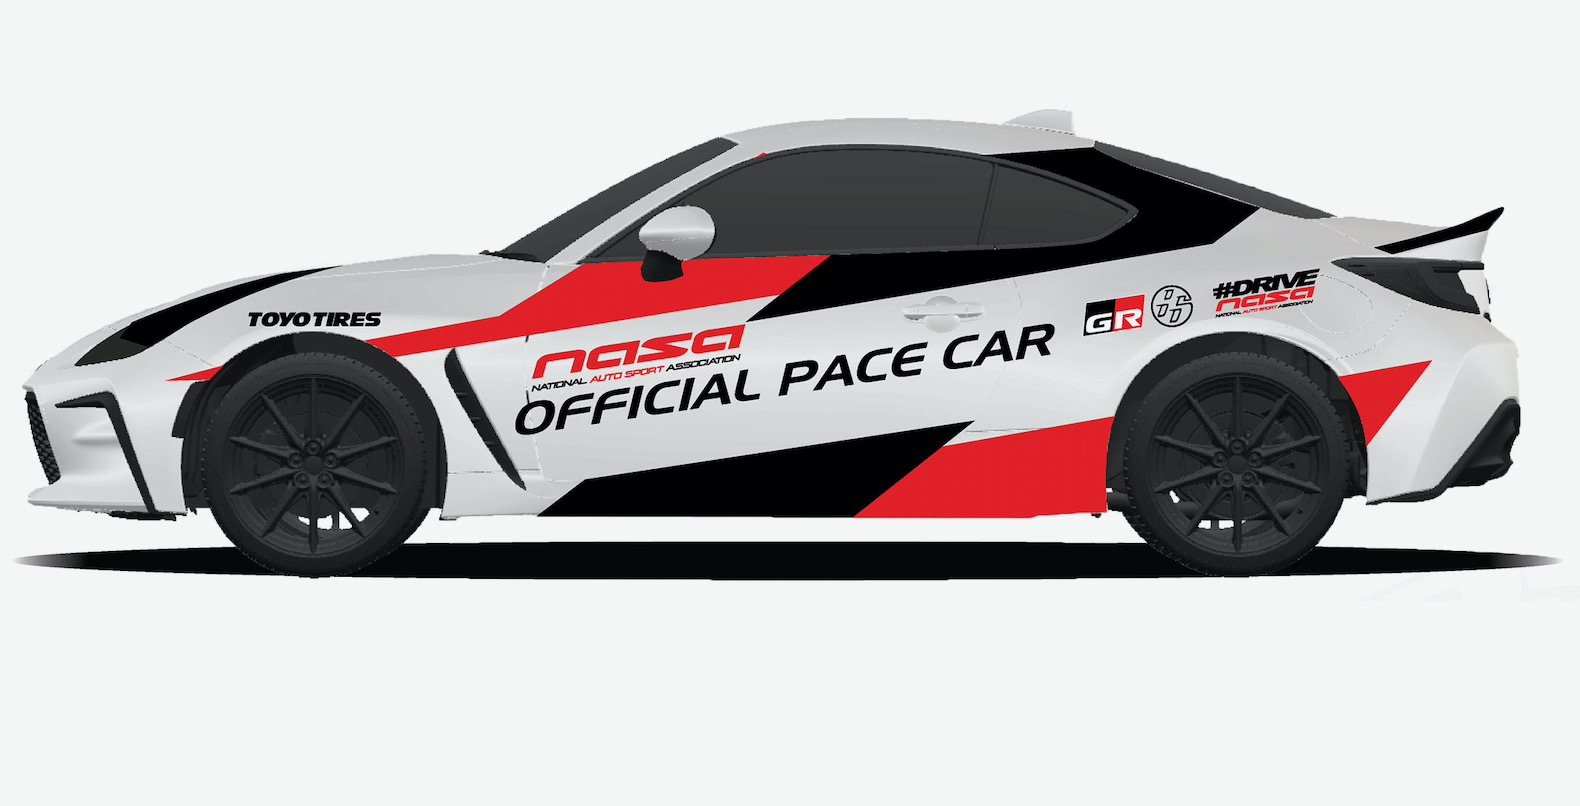 2022 Toyota GR 86 Pace Car